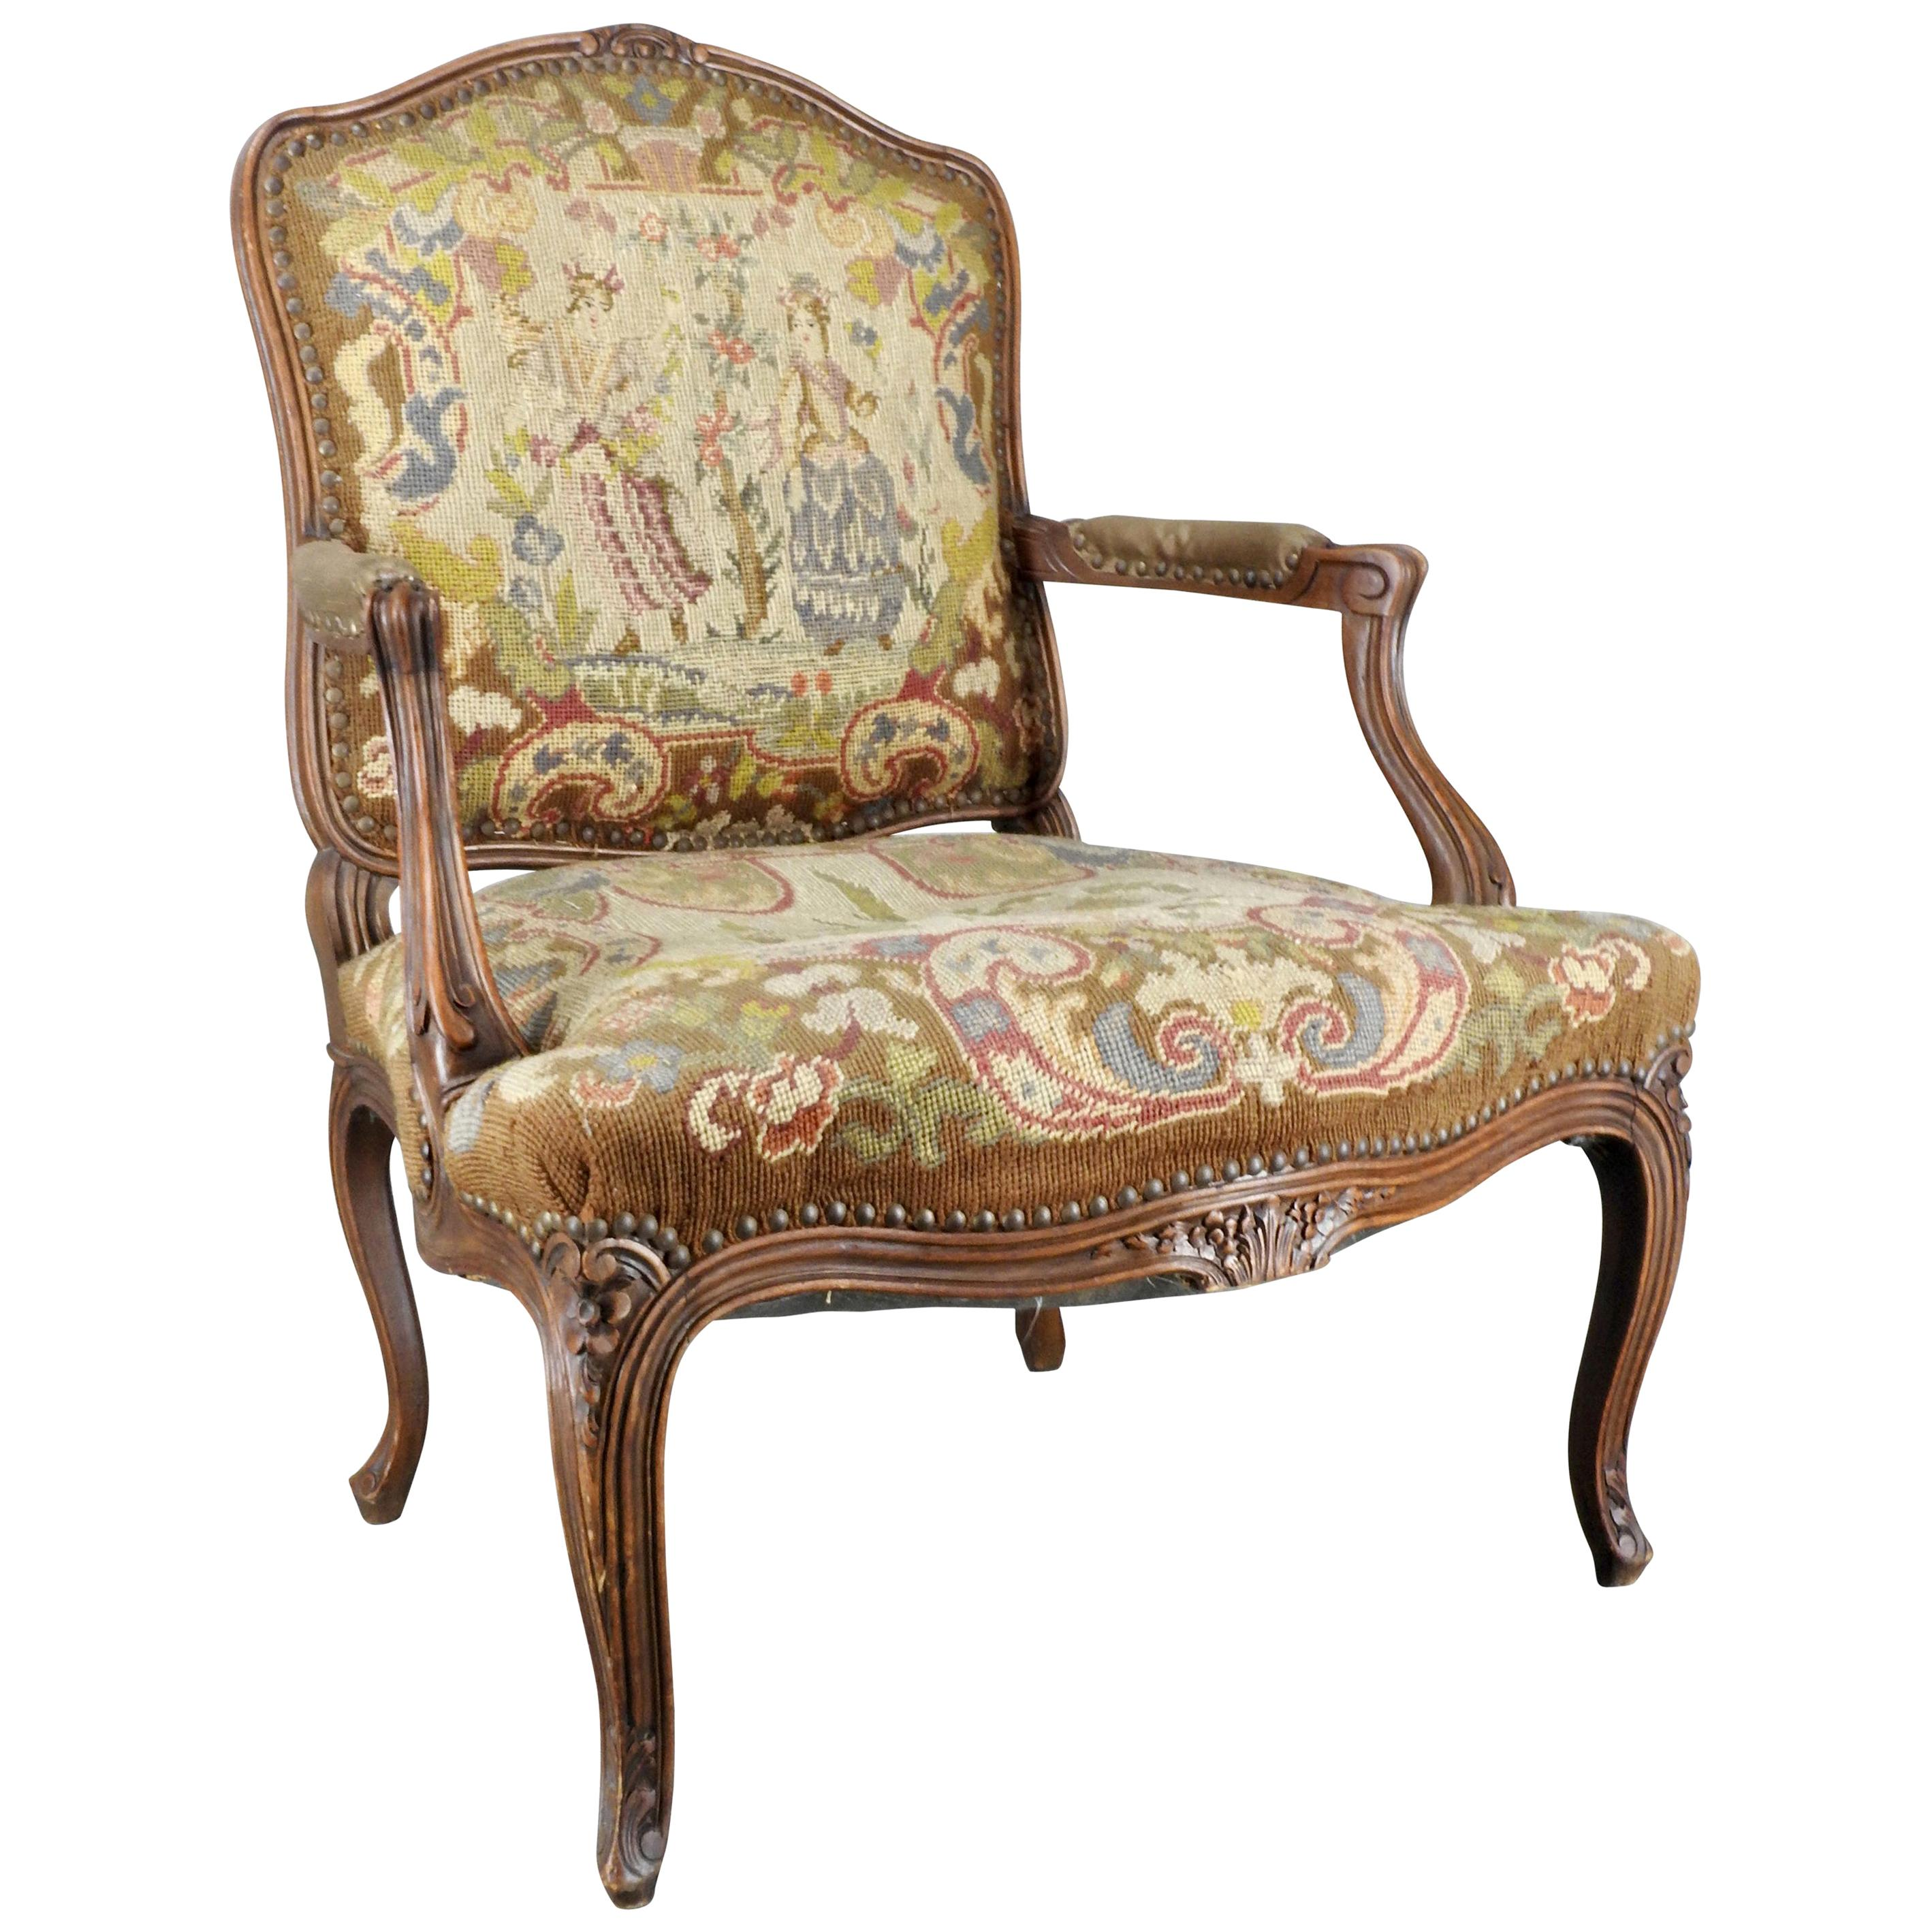 French Rococo Fauteuil With Needlepoint Upholstery For Sale At 1stdibs